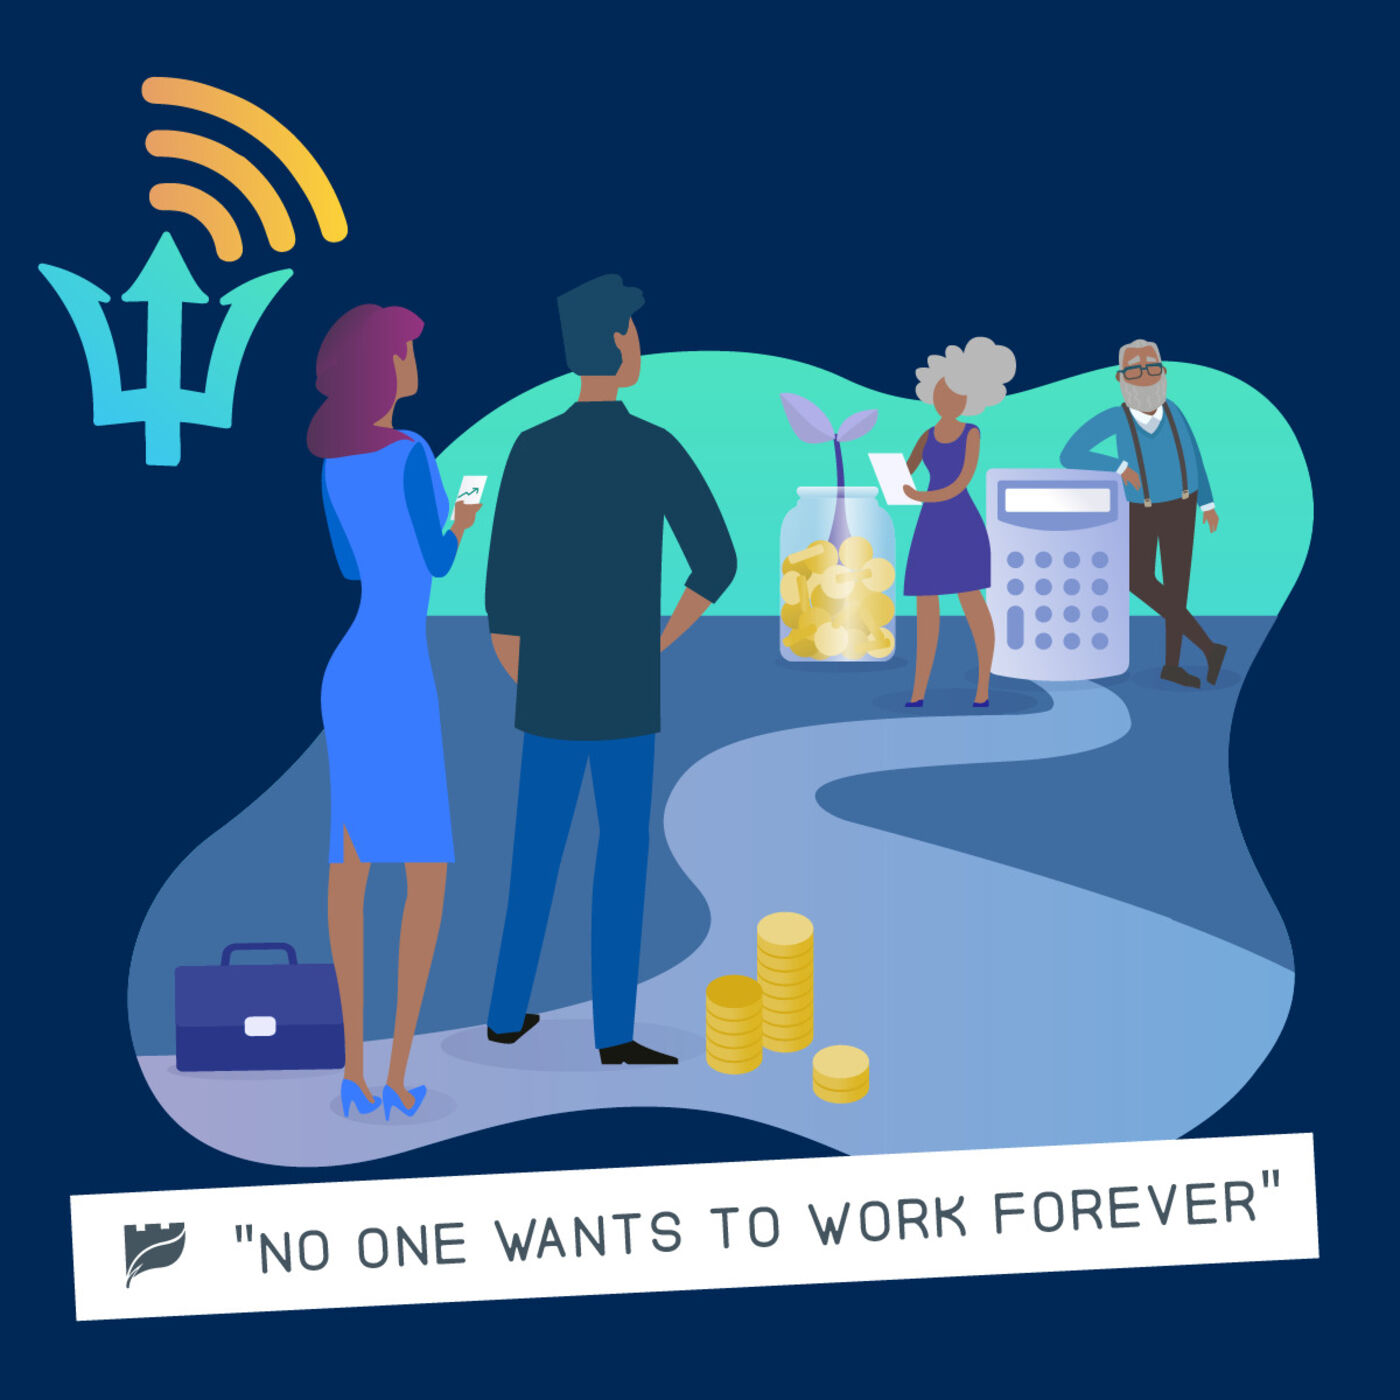 Ep. 15: No One Wants To Work Forever